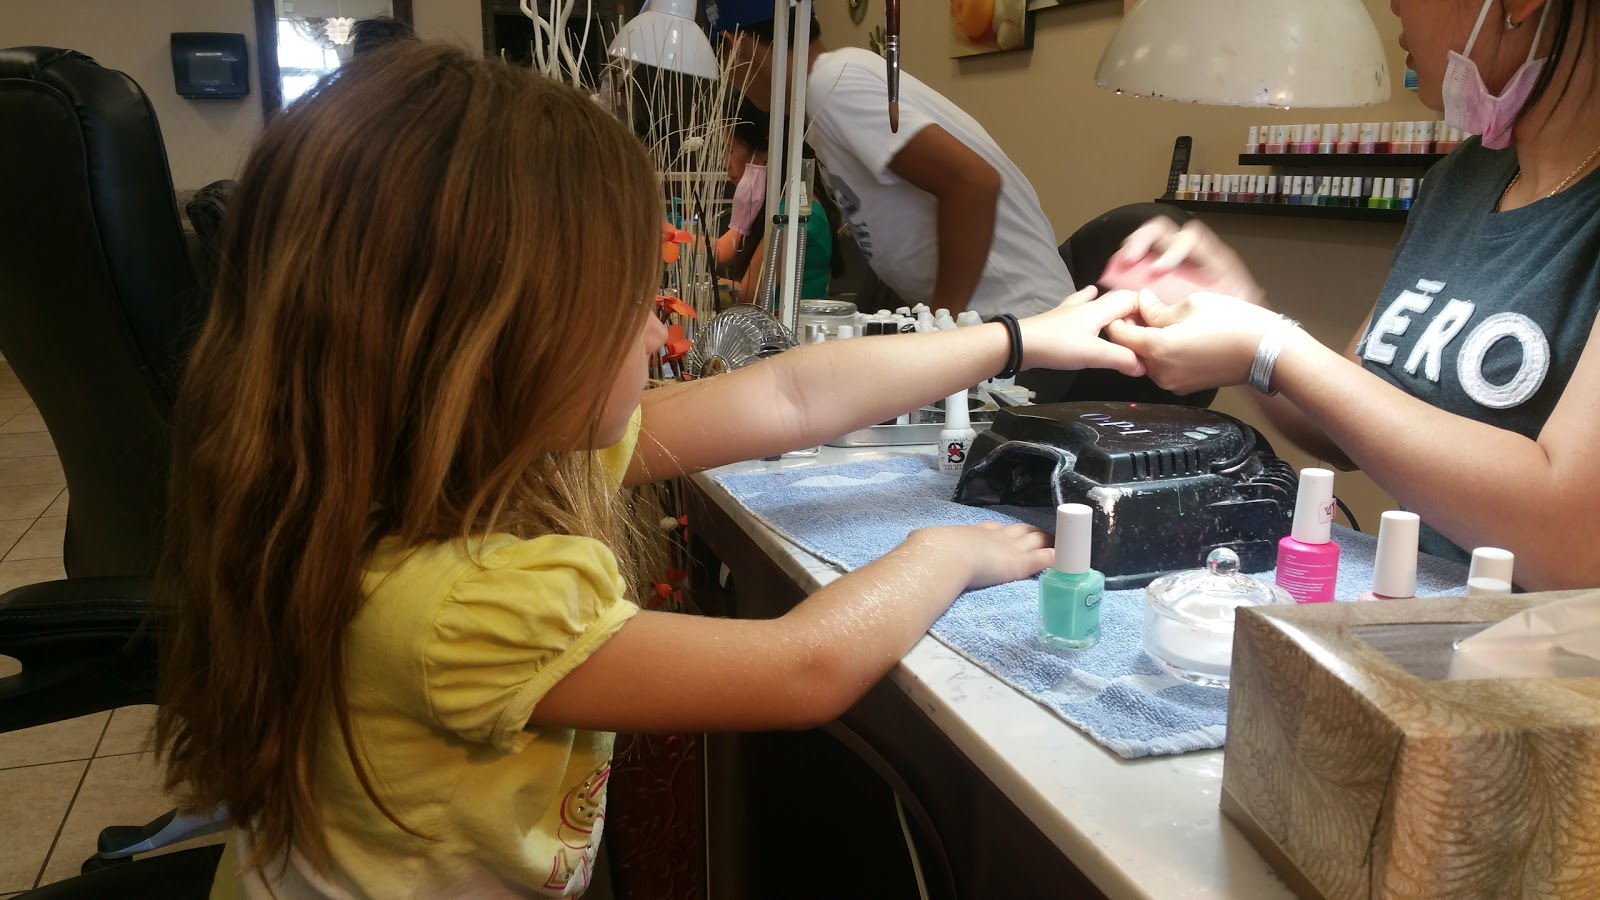 Nails Art, 4844 State Avenue, Kansas City, Reviews and Appointments ...